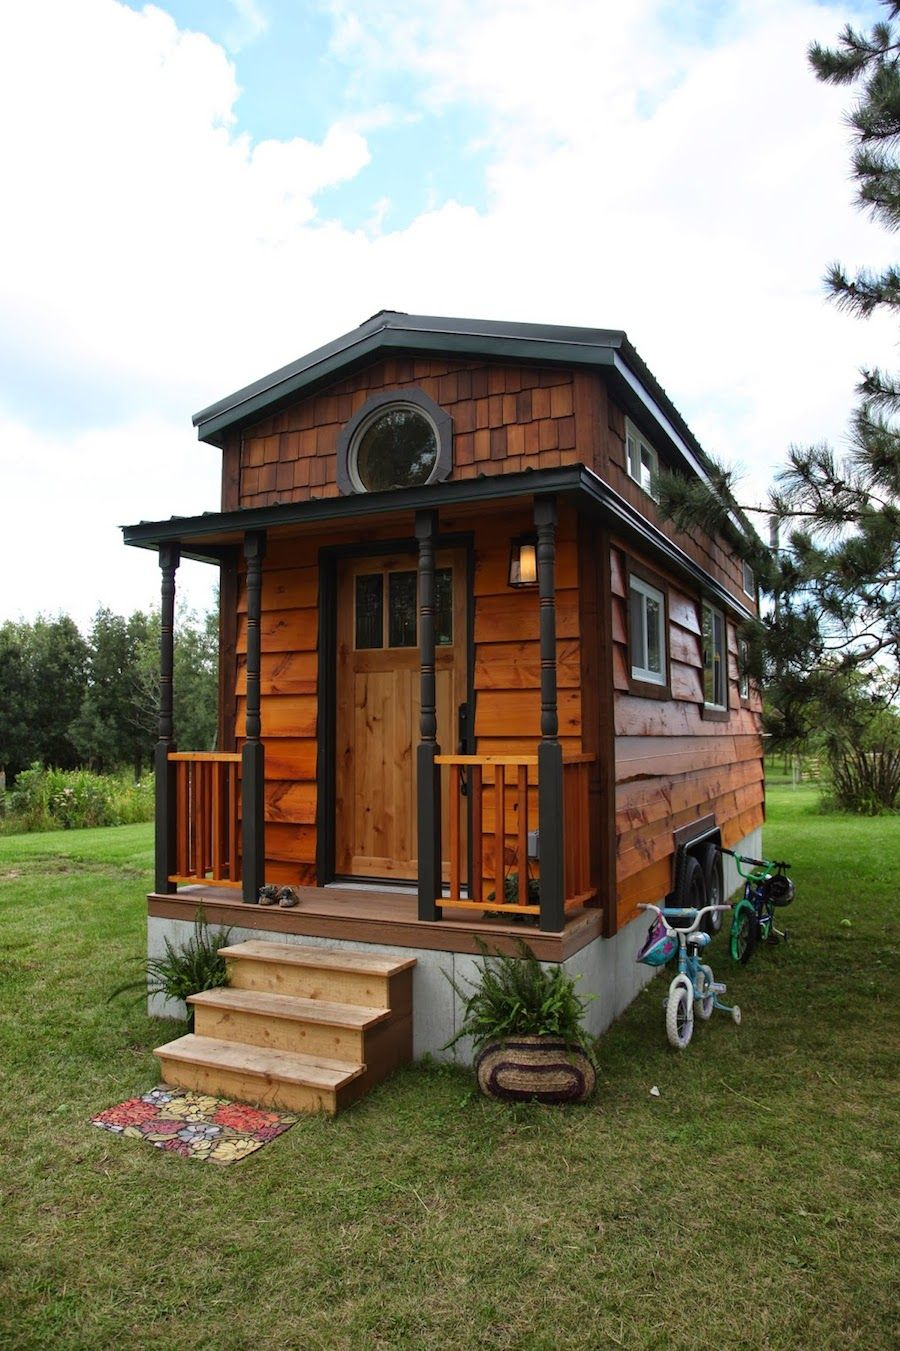 Tiny Home Designs: Kasl Family Tiny House